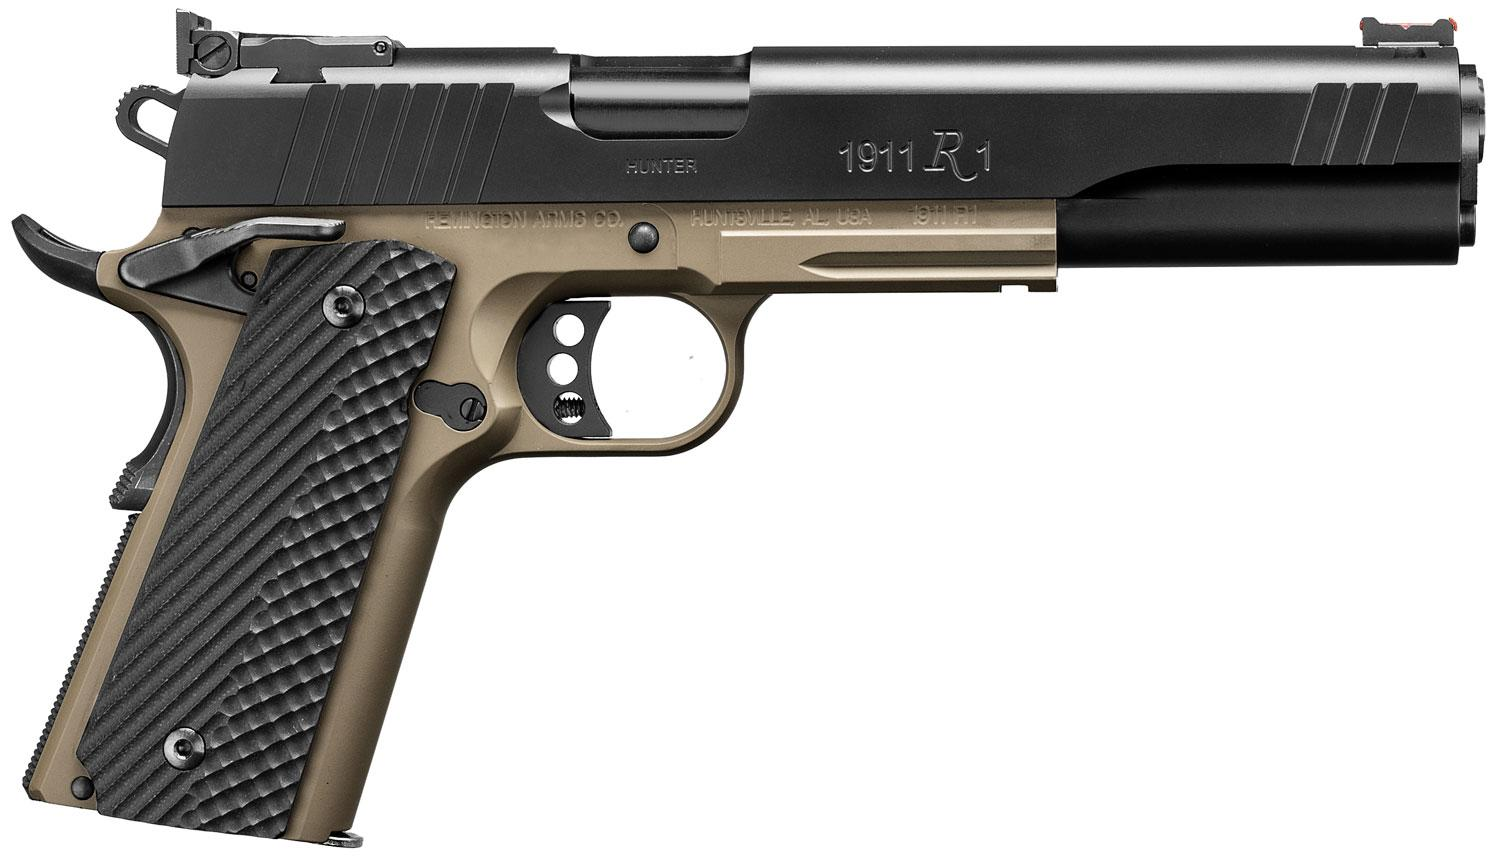 Remington 1911 R1 Hunter Pistol 96305, 10mm, 6 inch, Black G10 Grips, Flat  Dark Earth Cerakote Finish, 8 - Able Ammo